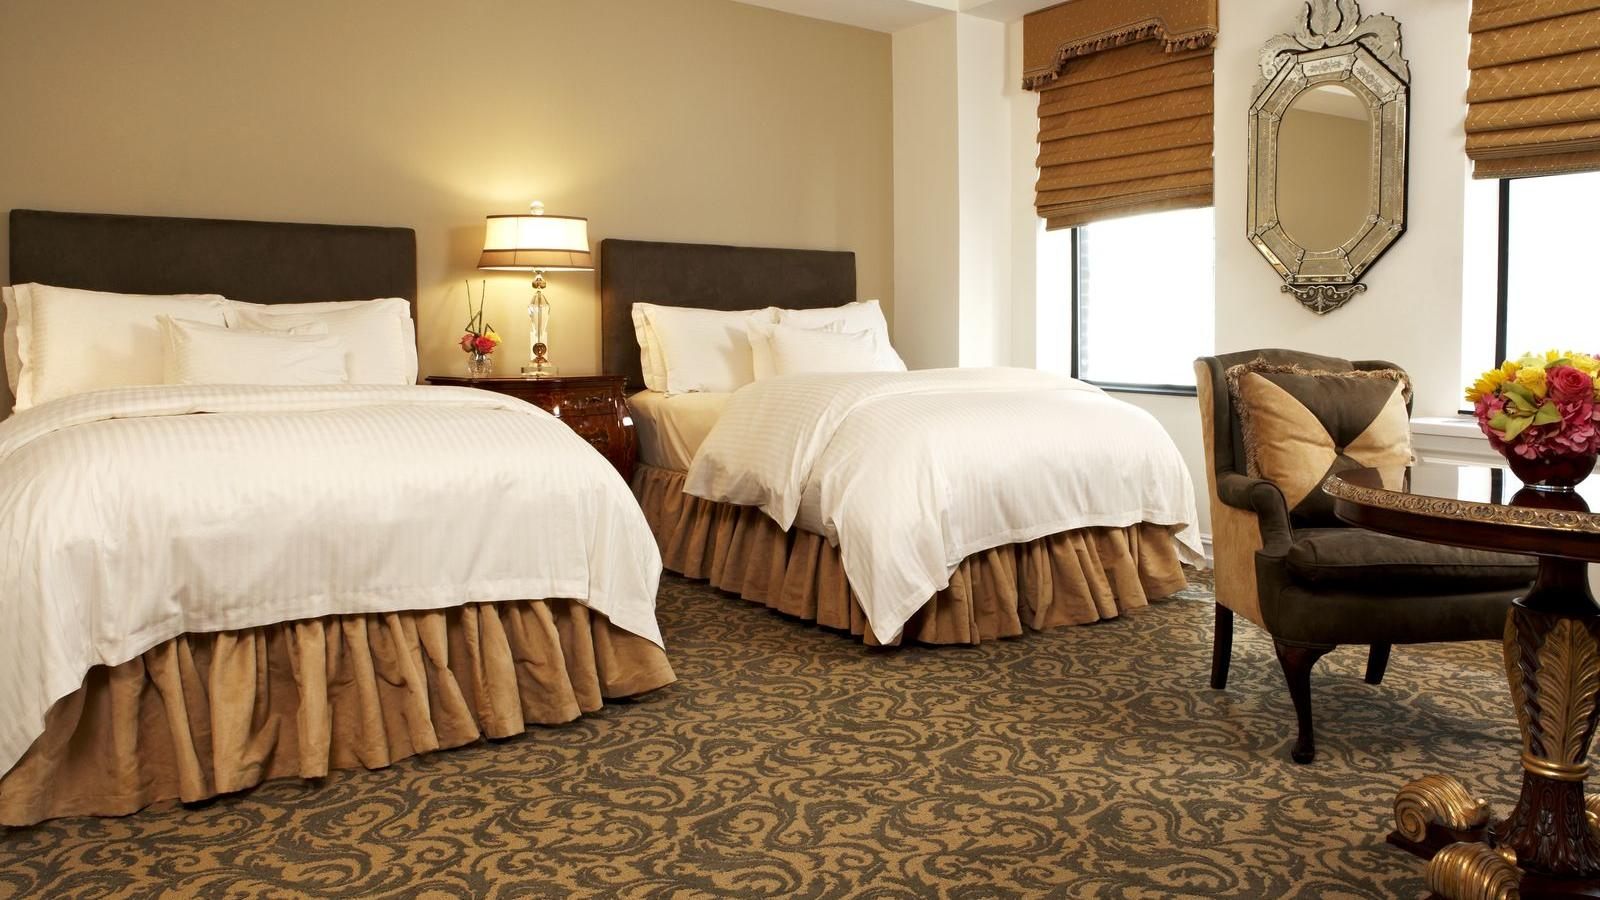 Deluxe Guestroom with two double beds